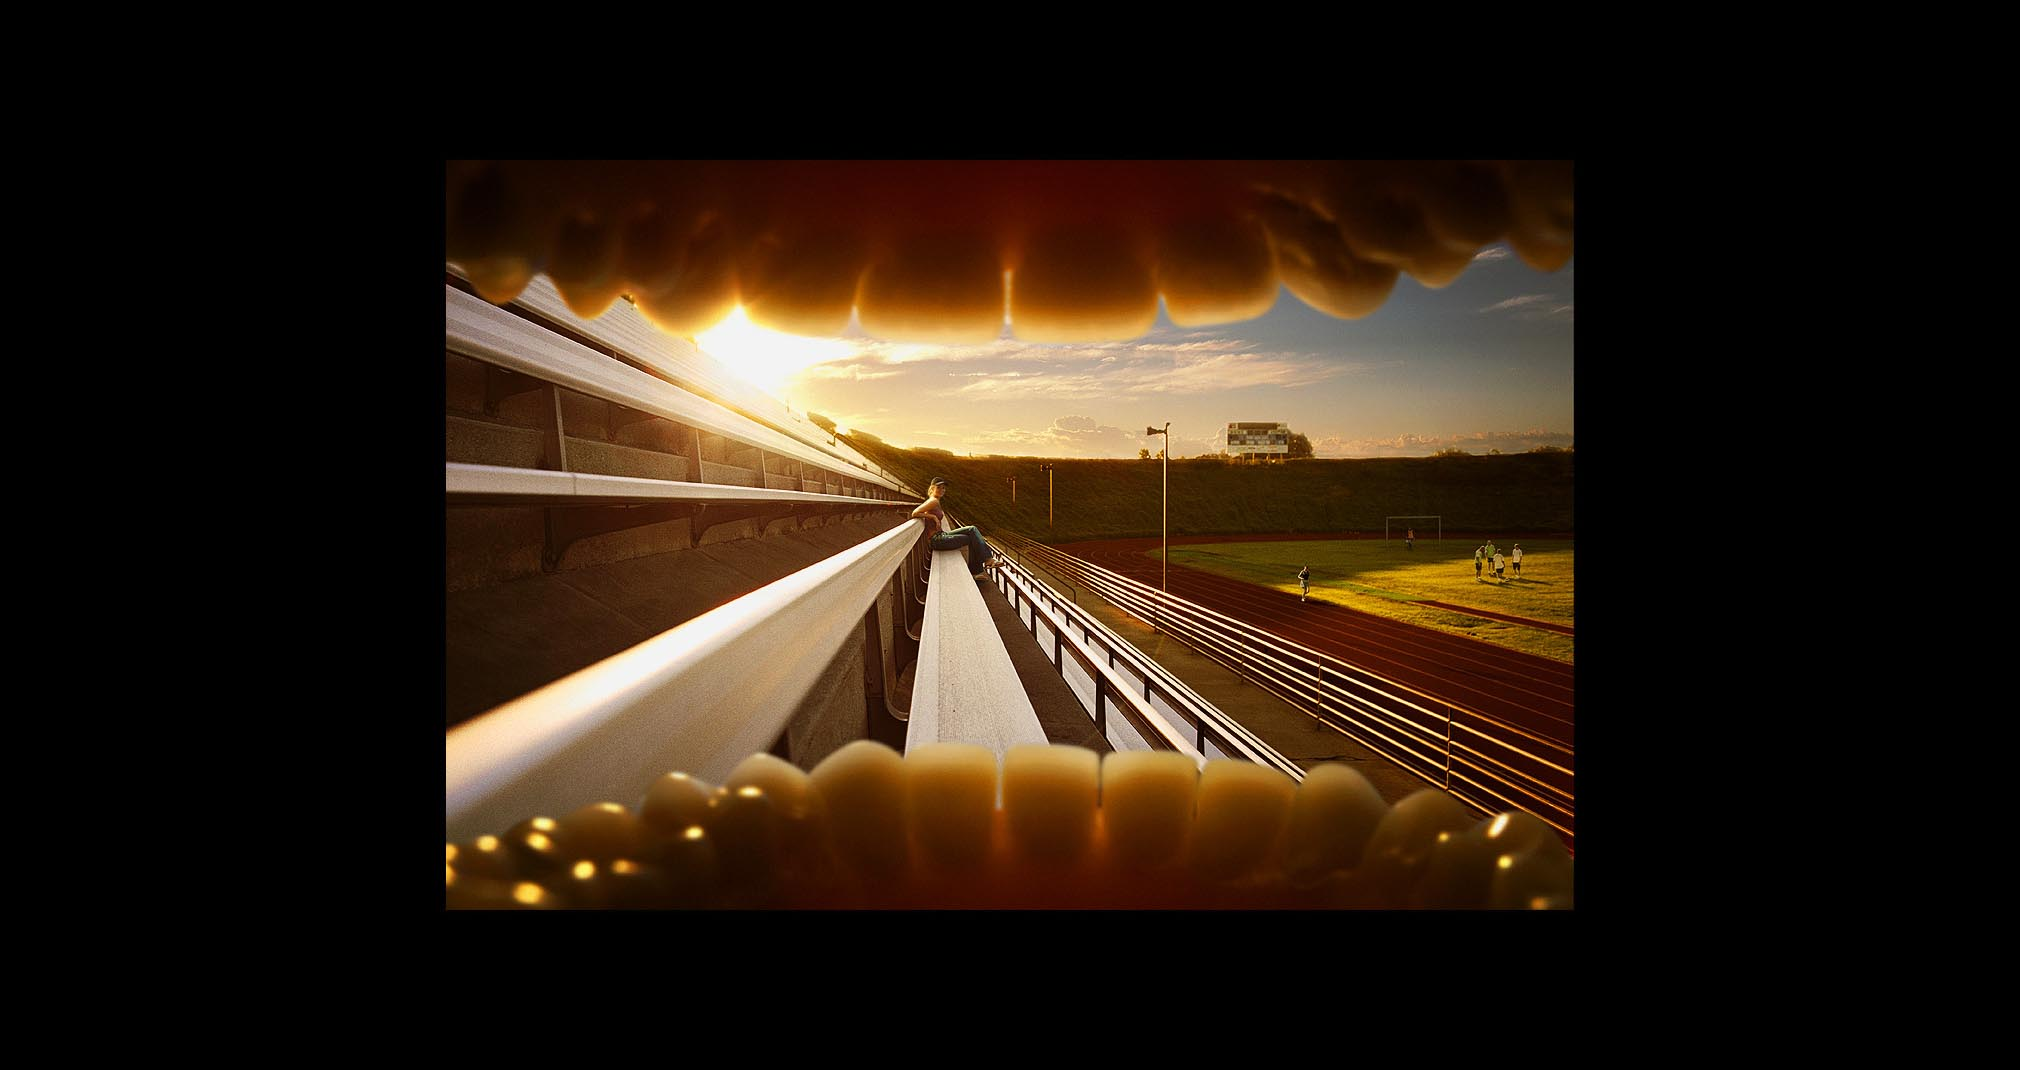 Bleachers of track and field stadium